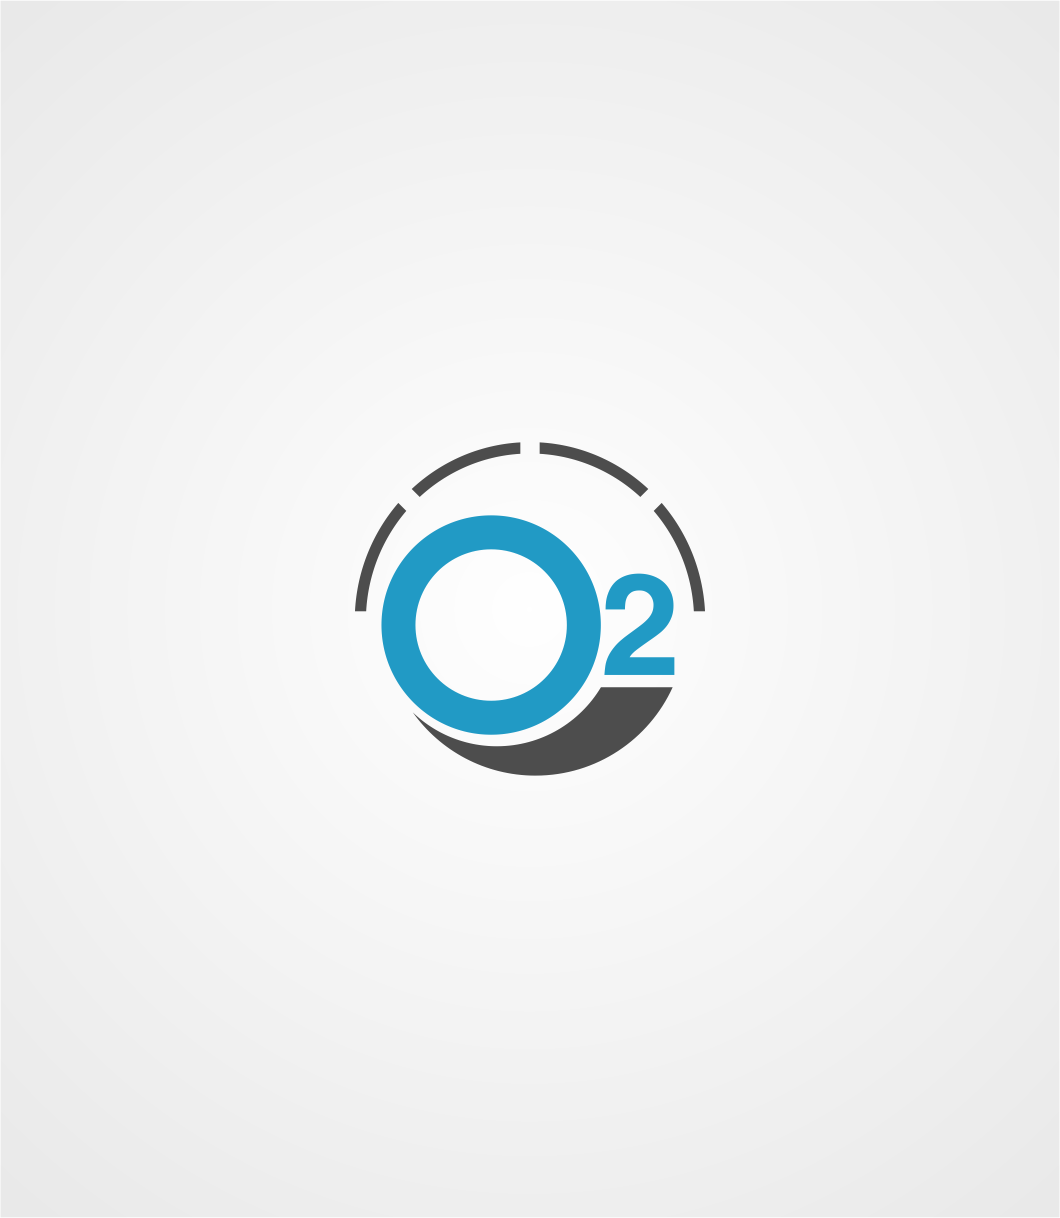 Logo Design by Private User - Entry No. 18 in the Logo Design Contest Artistic Logo Design for O2.